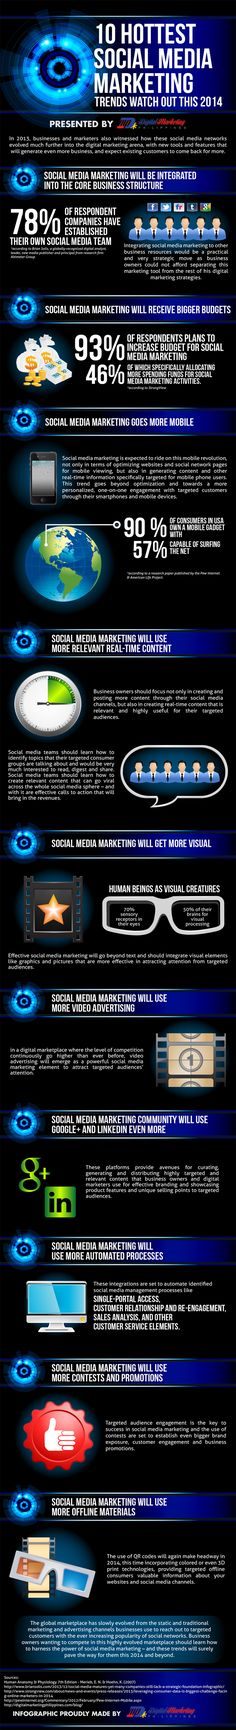 10 hottest Social Media Marketing trends to watch out This 2014. #infographic #socialmedia #trends